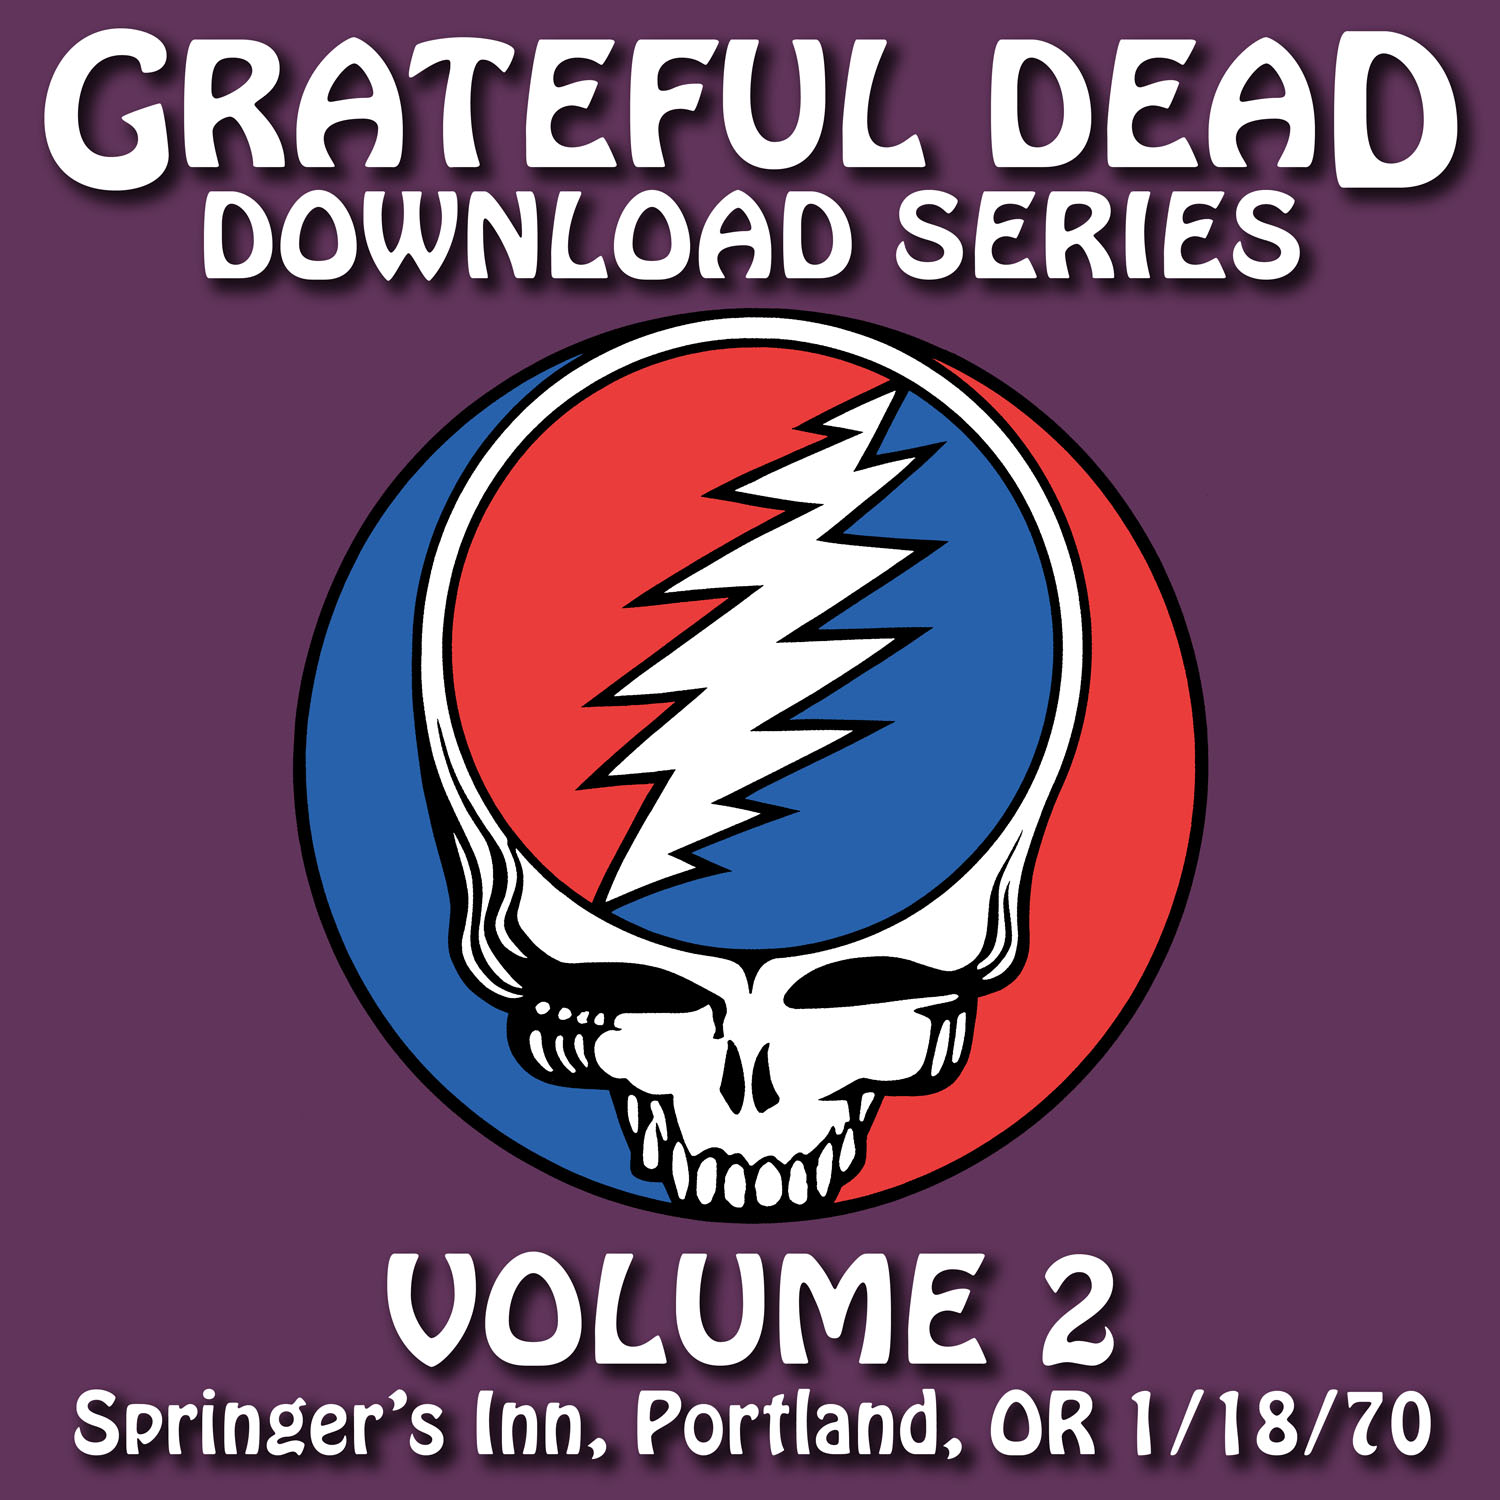 Grateful Dead Download Series 2 album cover artwork